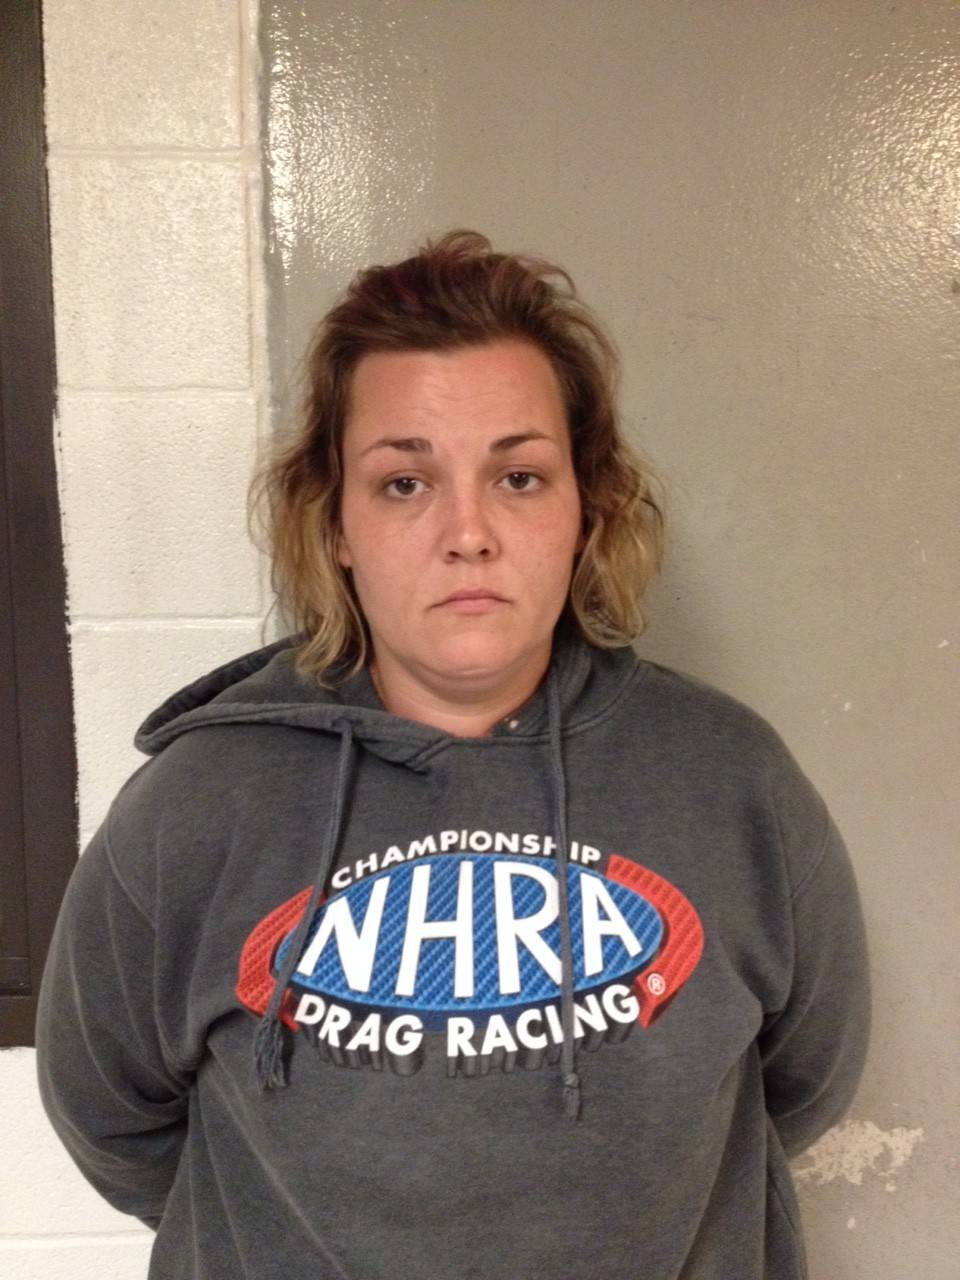 antioch women An antioch township woman will spend 10 years in prison after pleading guilty in a dui crash that killed an antioch motorcyclist in 2015.